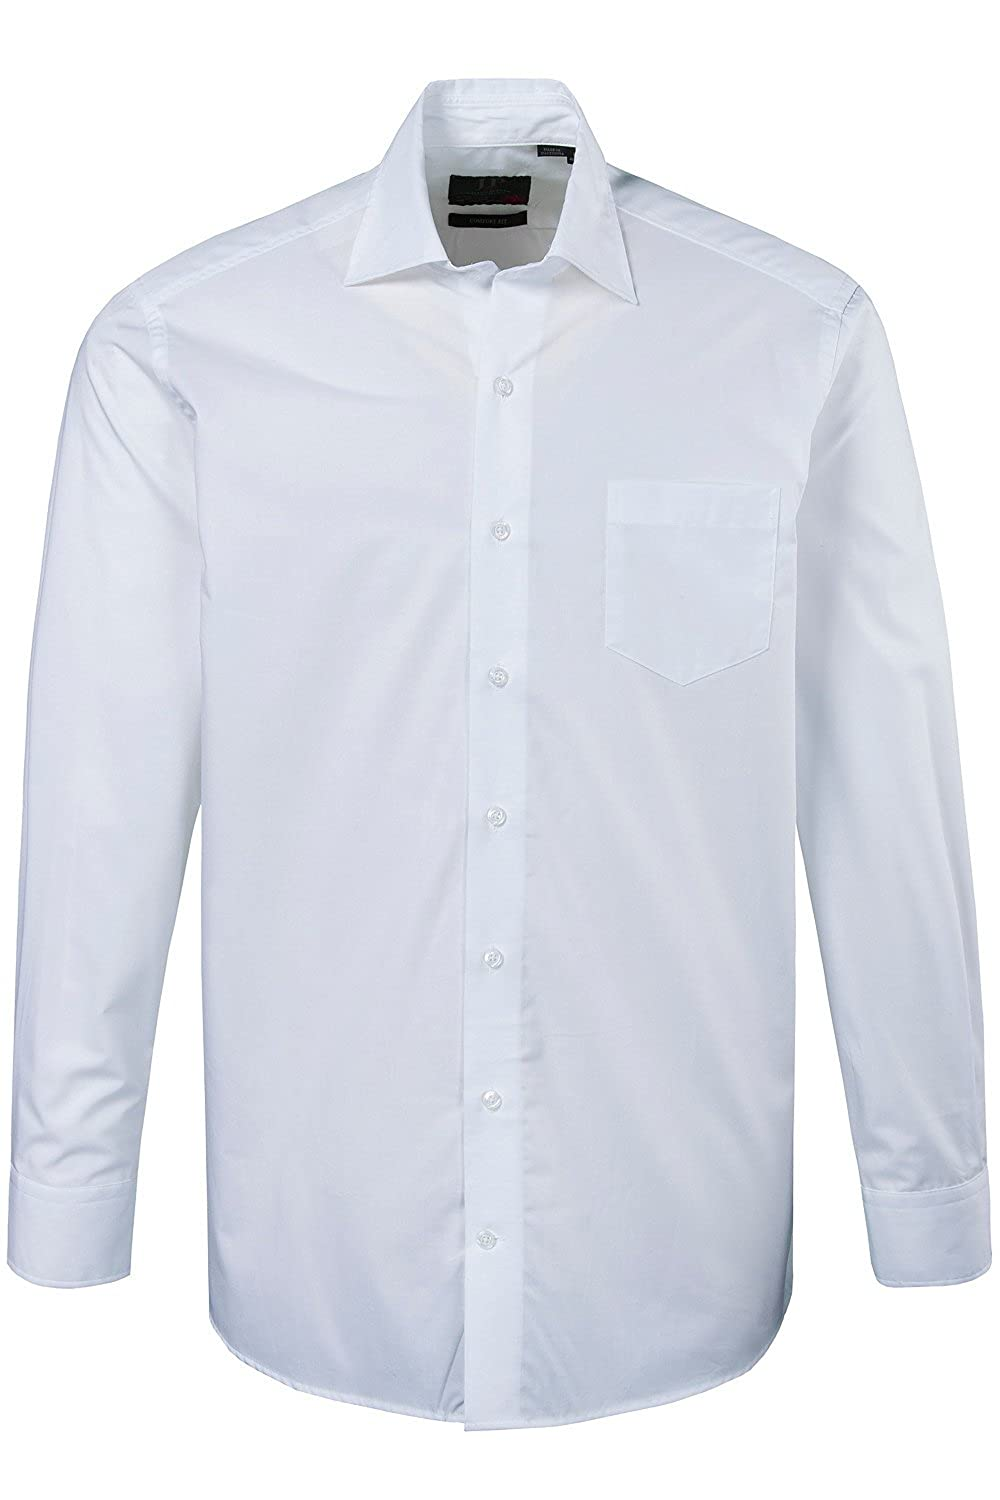 JP1880 Men's Big & Tall Shirt 706861